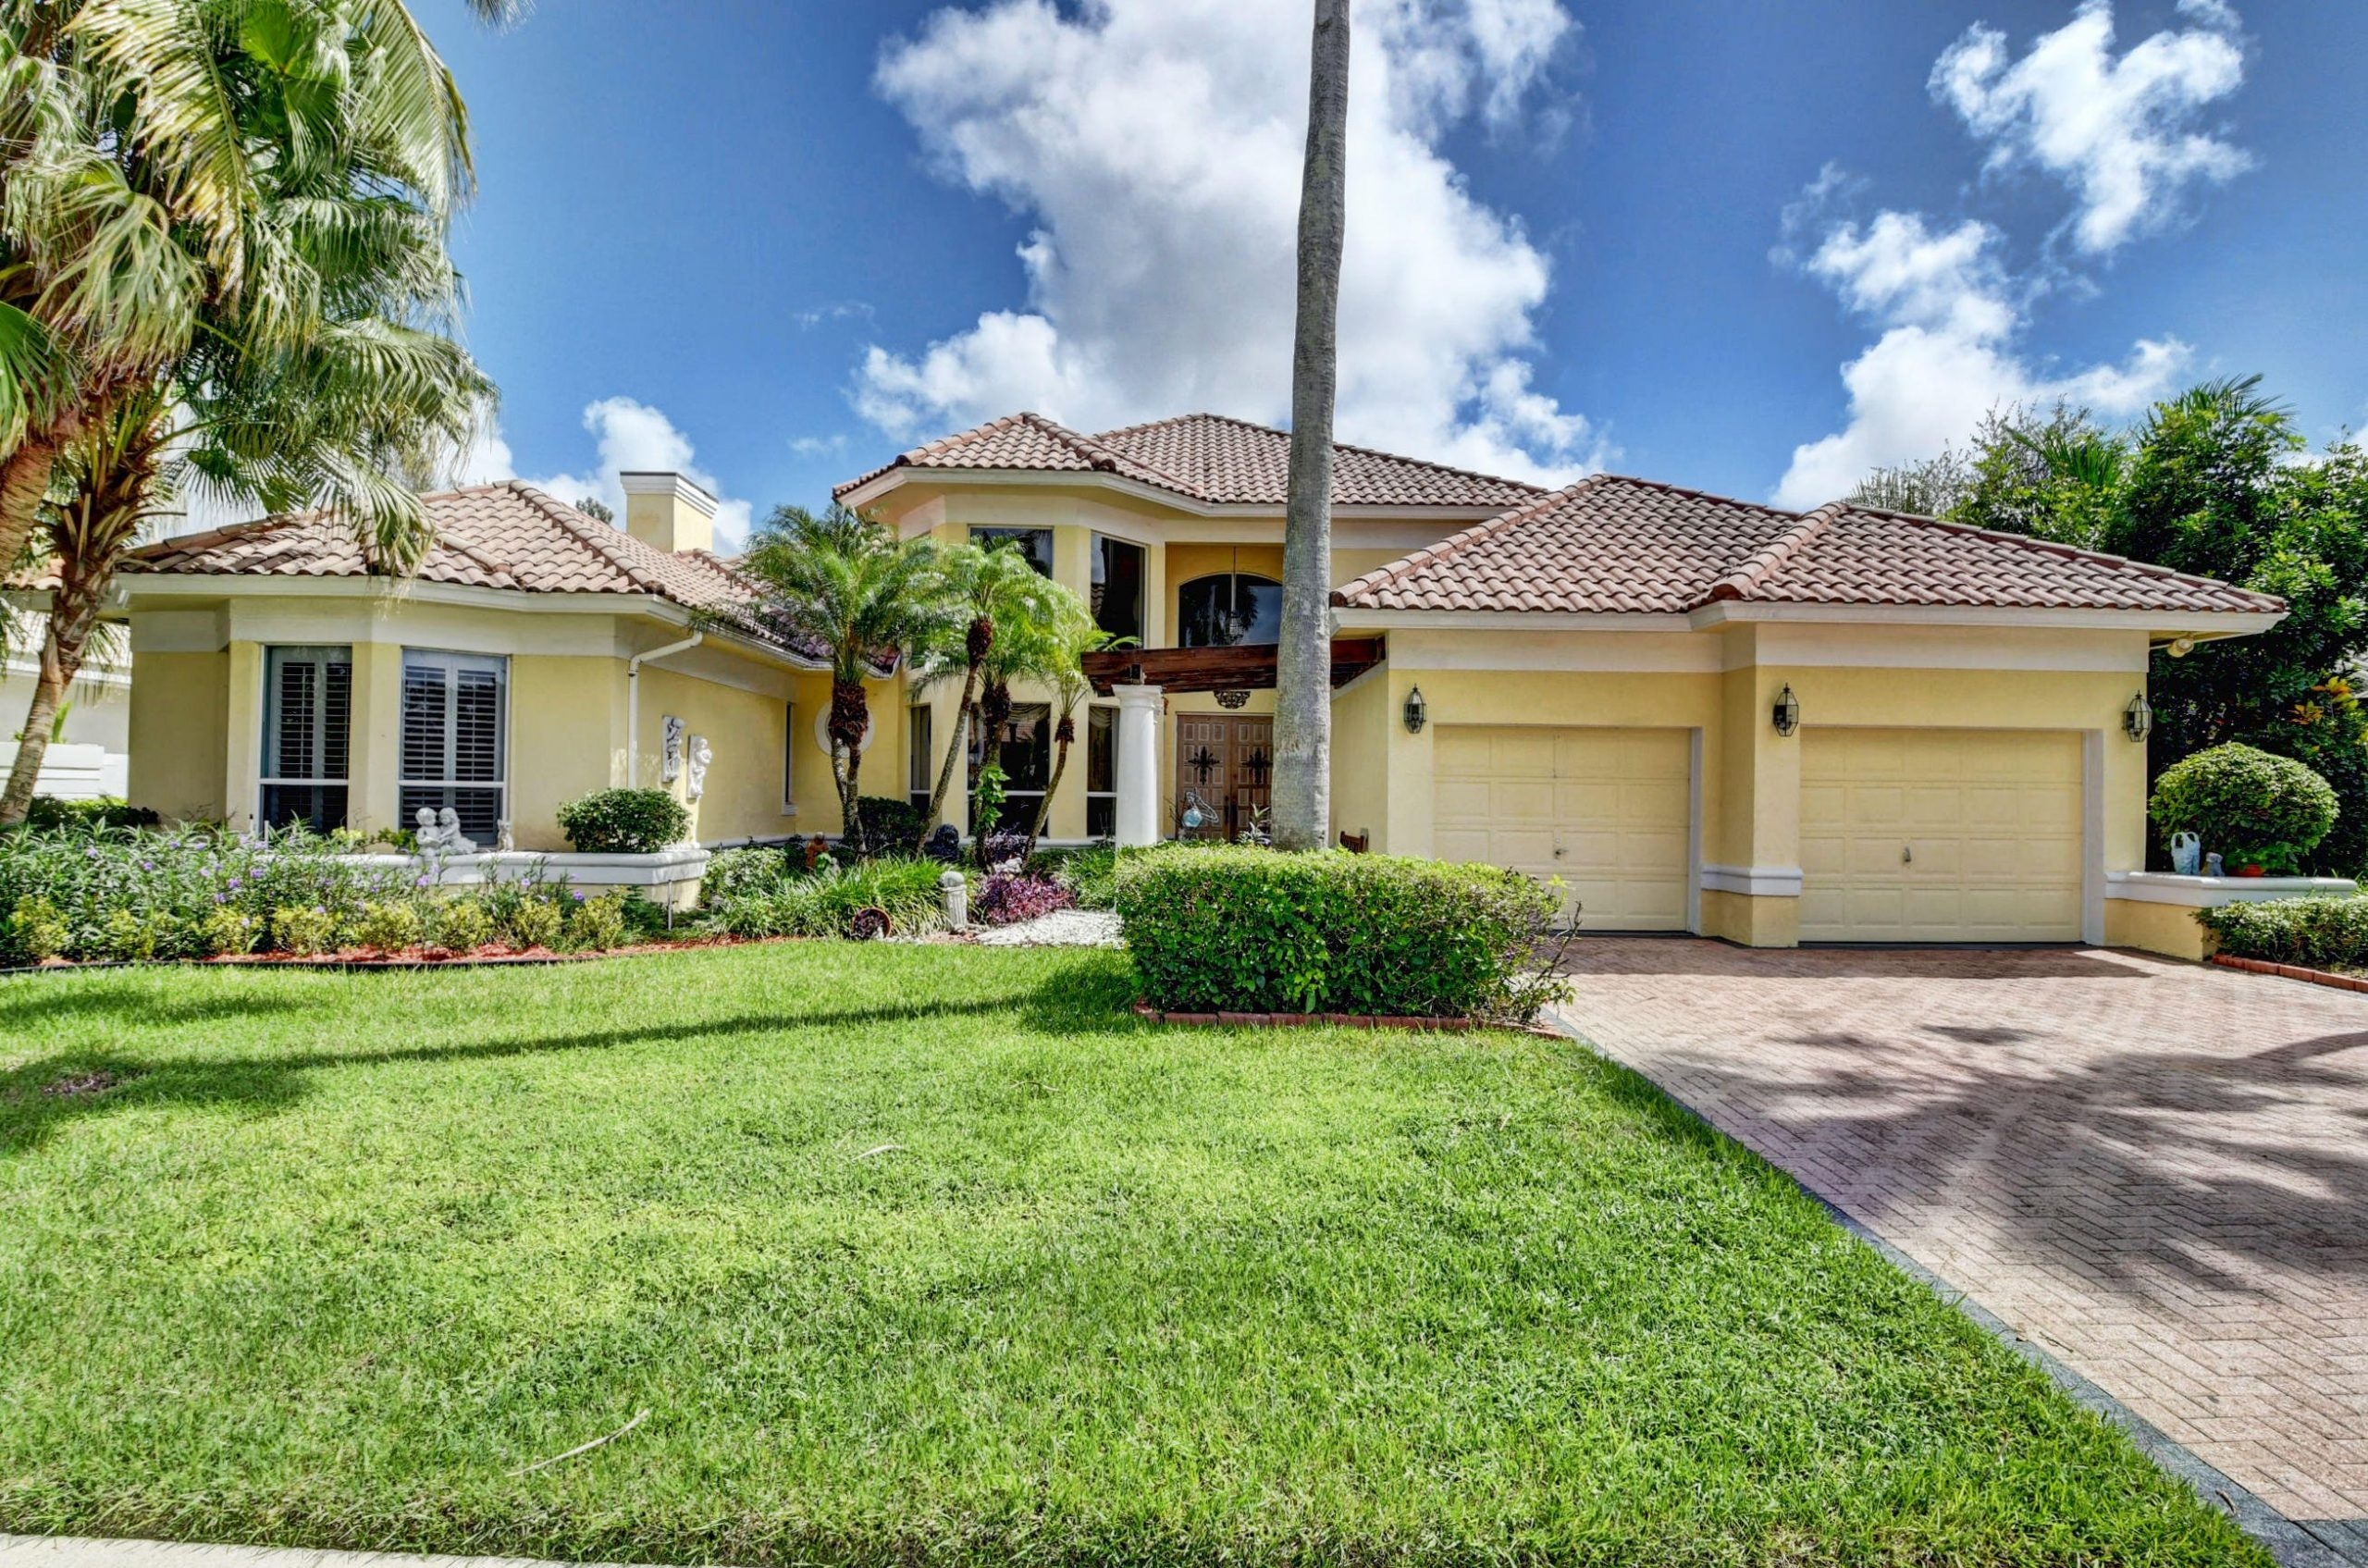 Why do people prefer Boca Raton Real Estate agents?